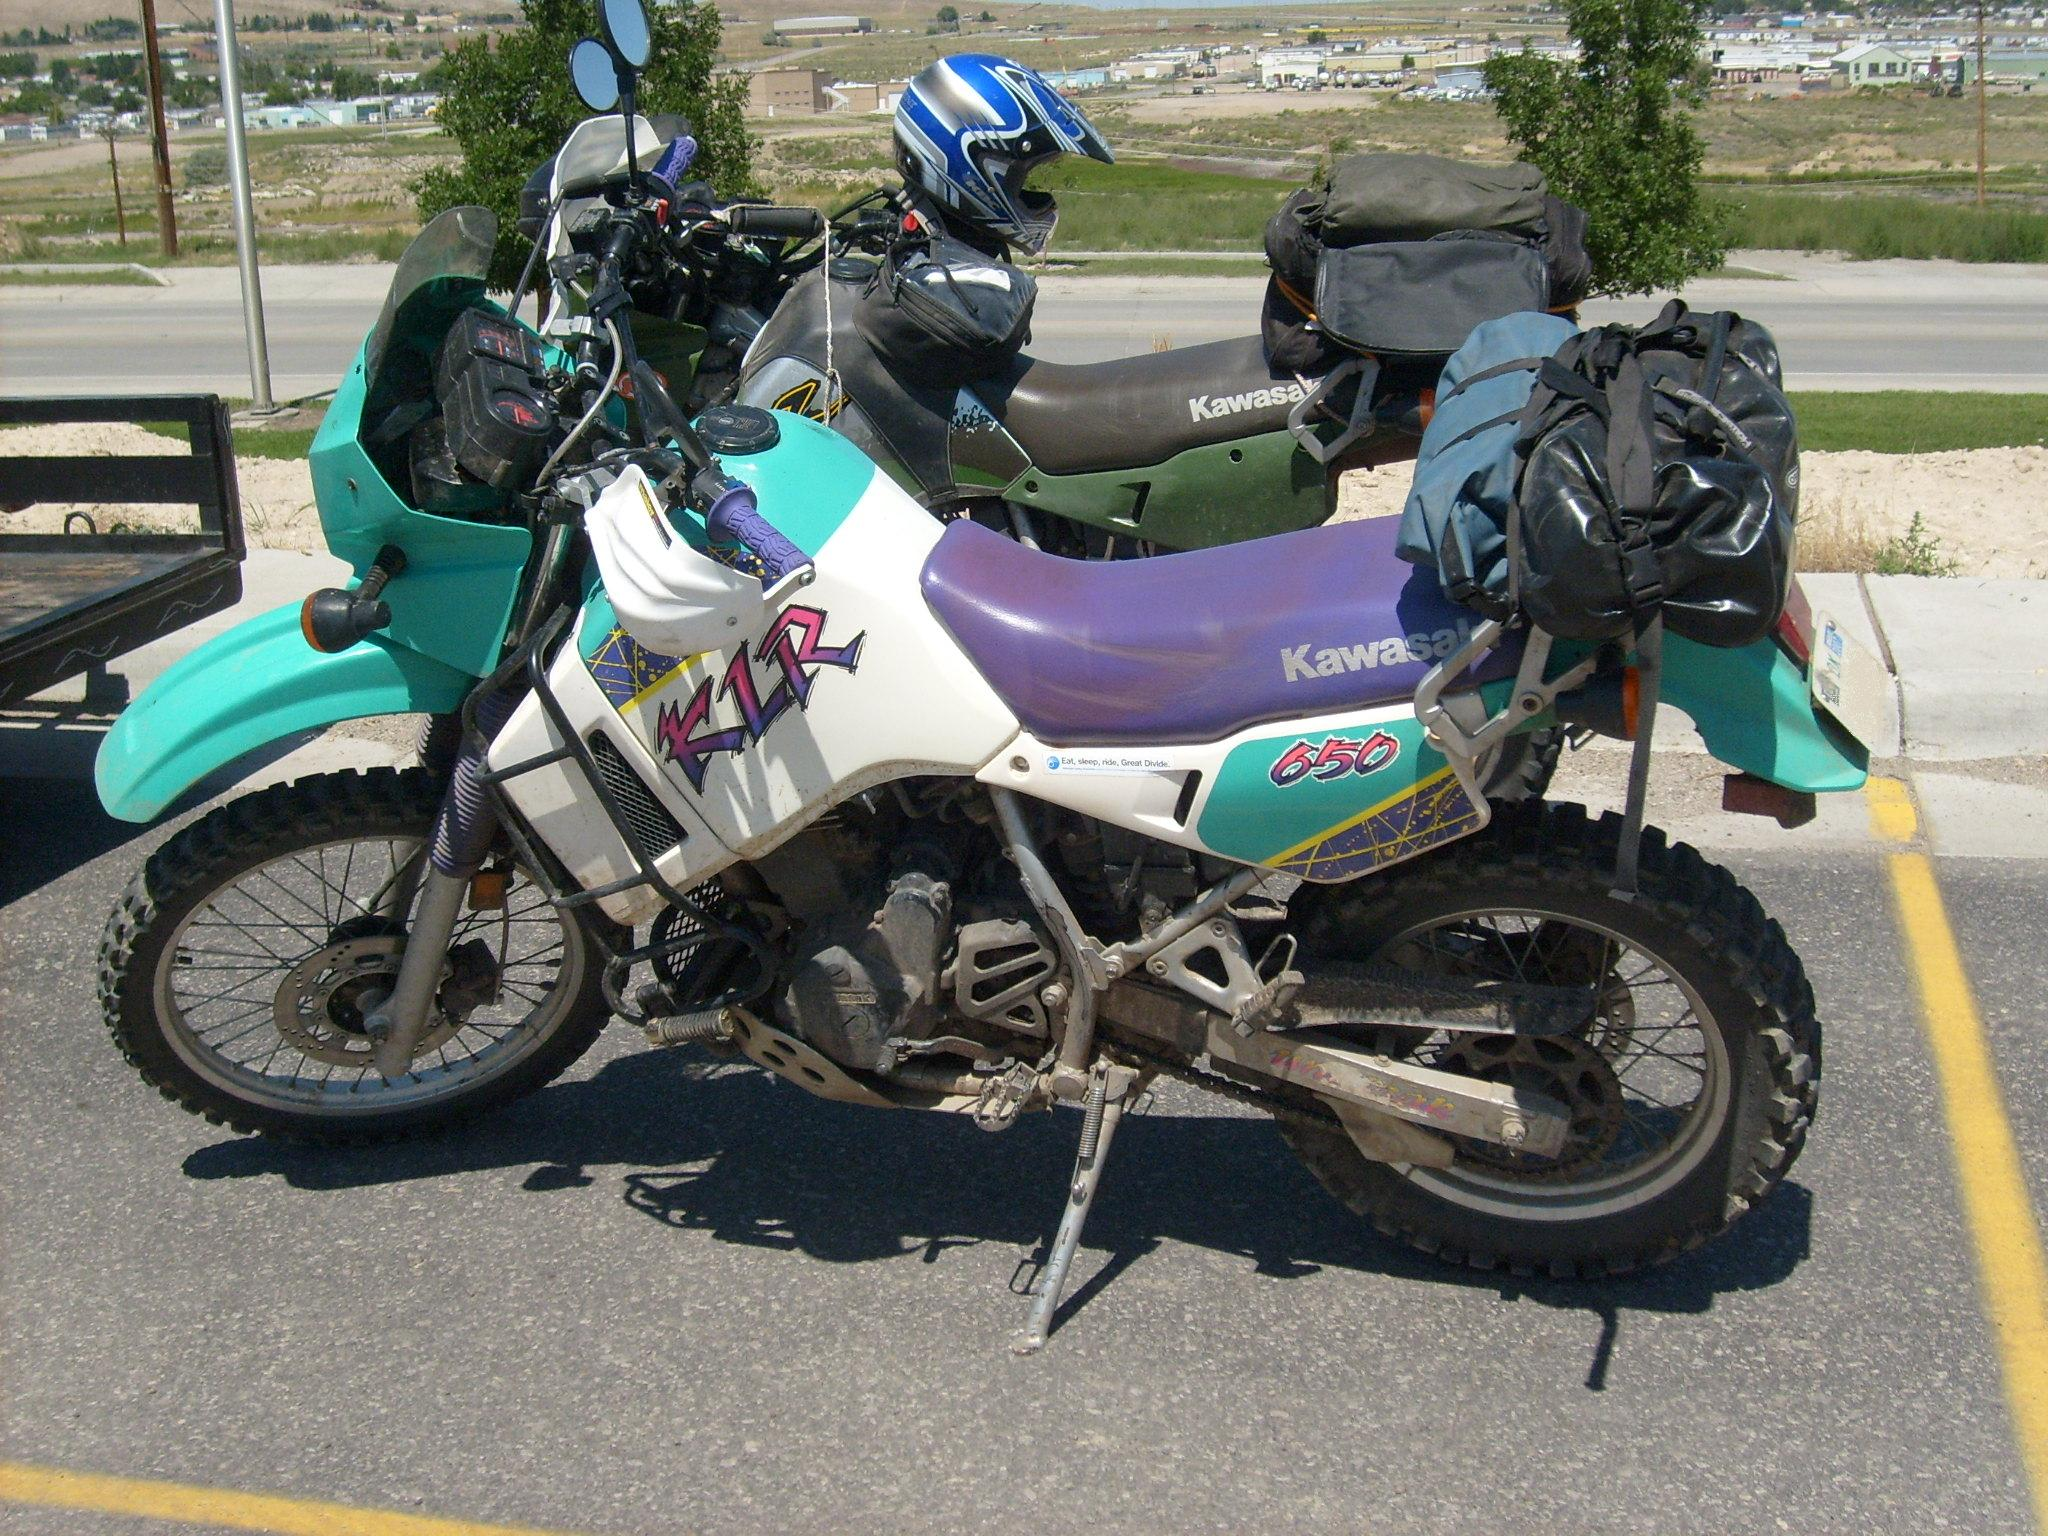 KLR650-Adventure-Rider-Radio-Motorcycle-Podcast.JPG